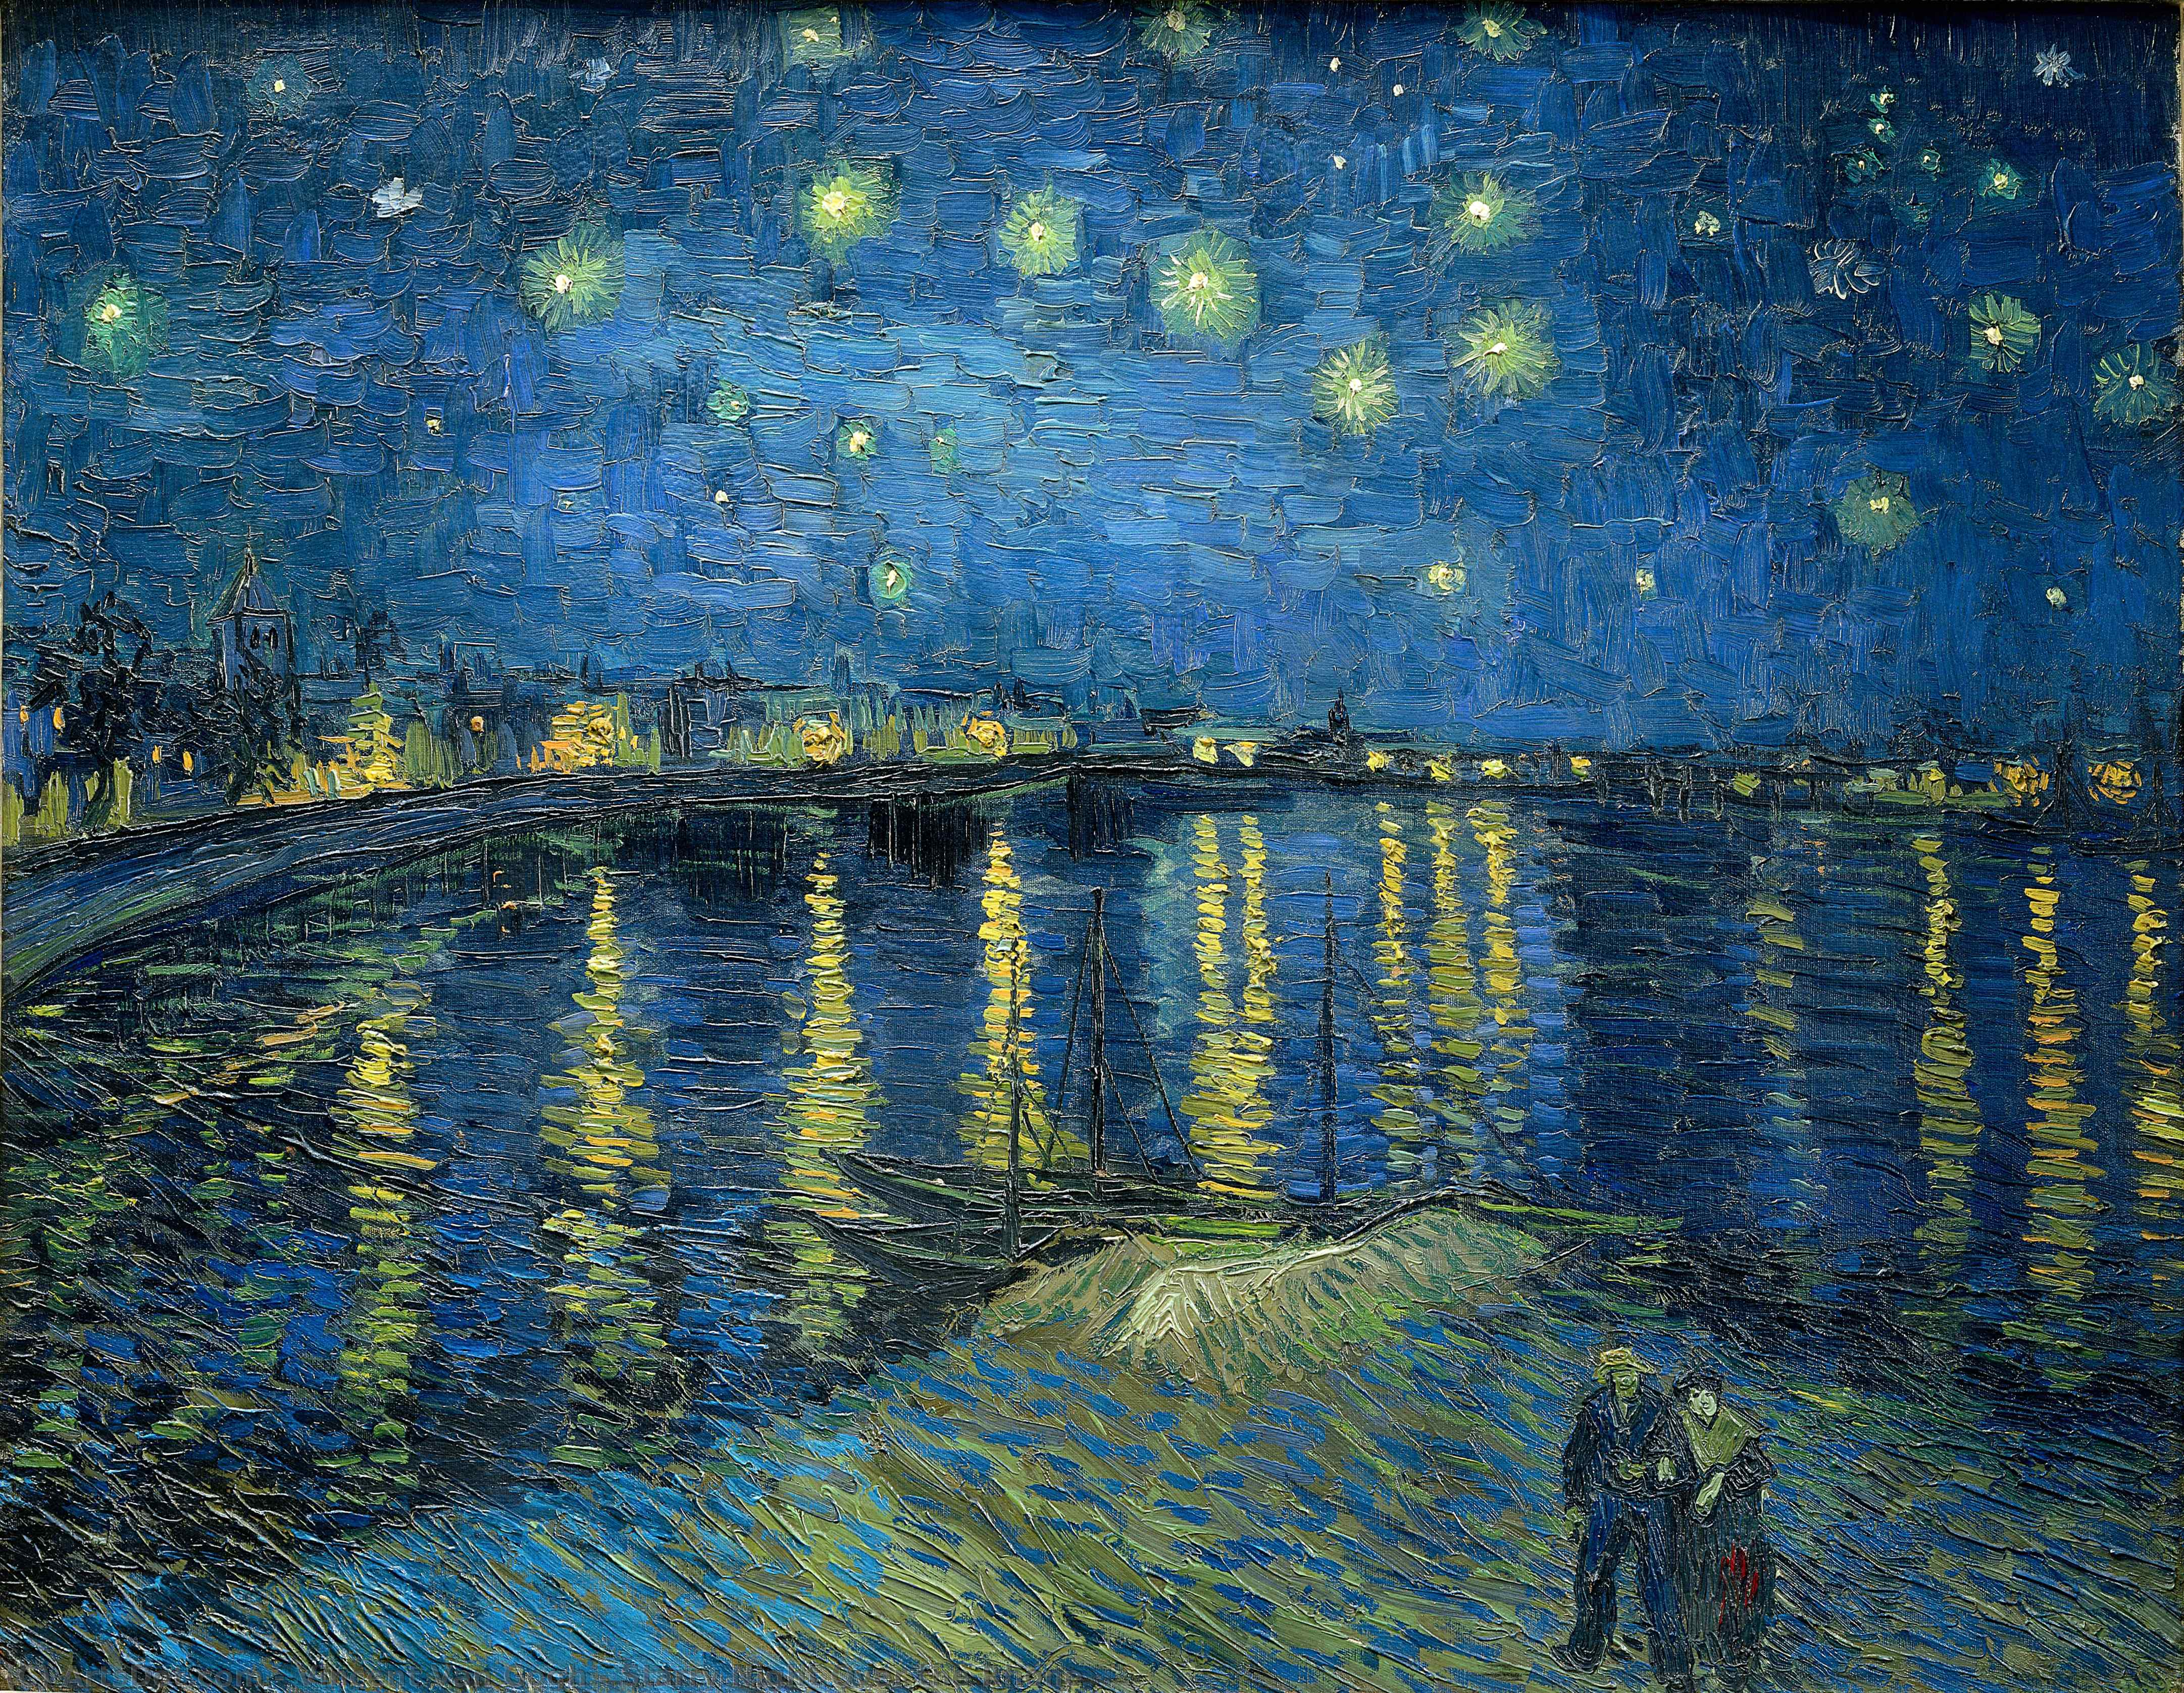 Wikioo.org - The Encyclopedia of Fine Arts - Painting, Artwork by Vincent Van Gogh - Starry Night Over the Rhone